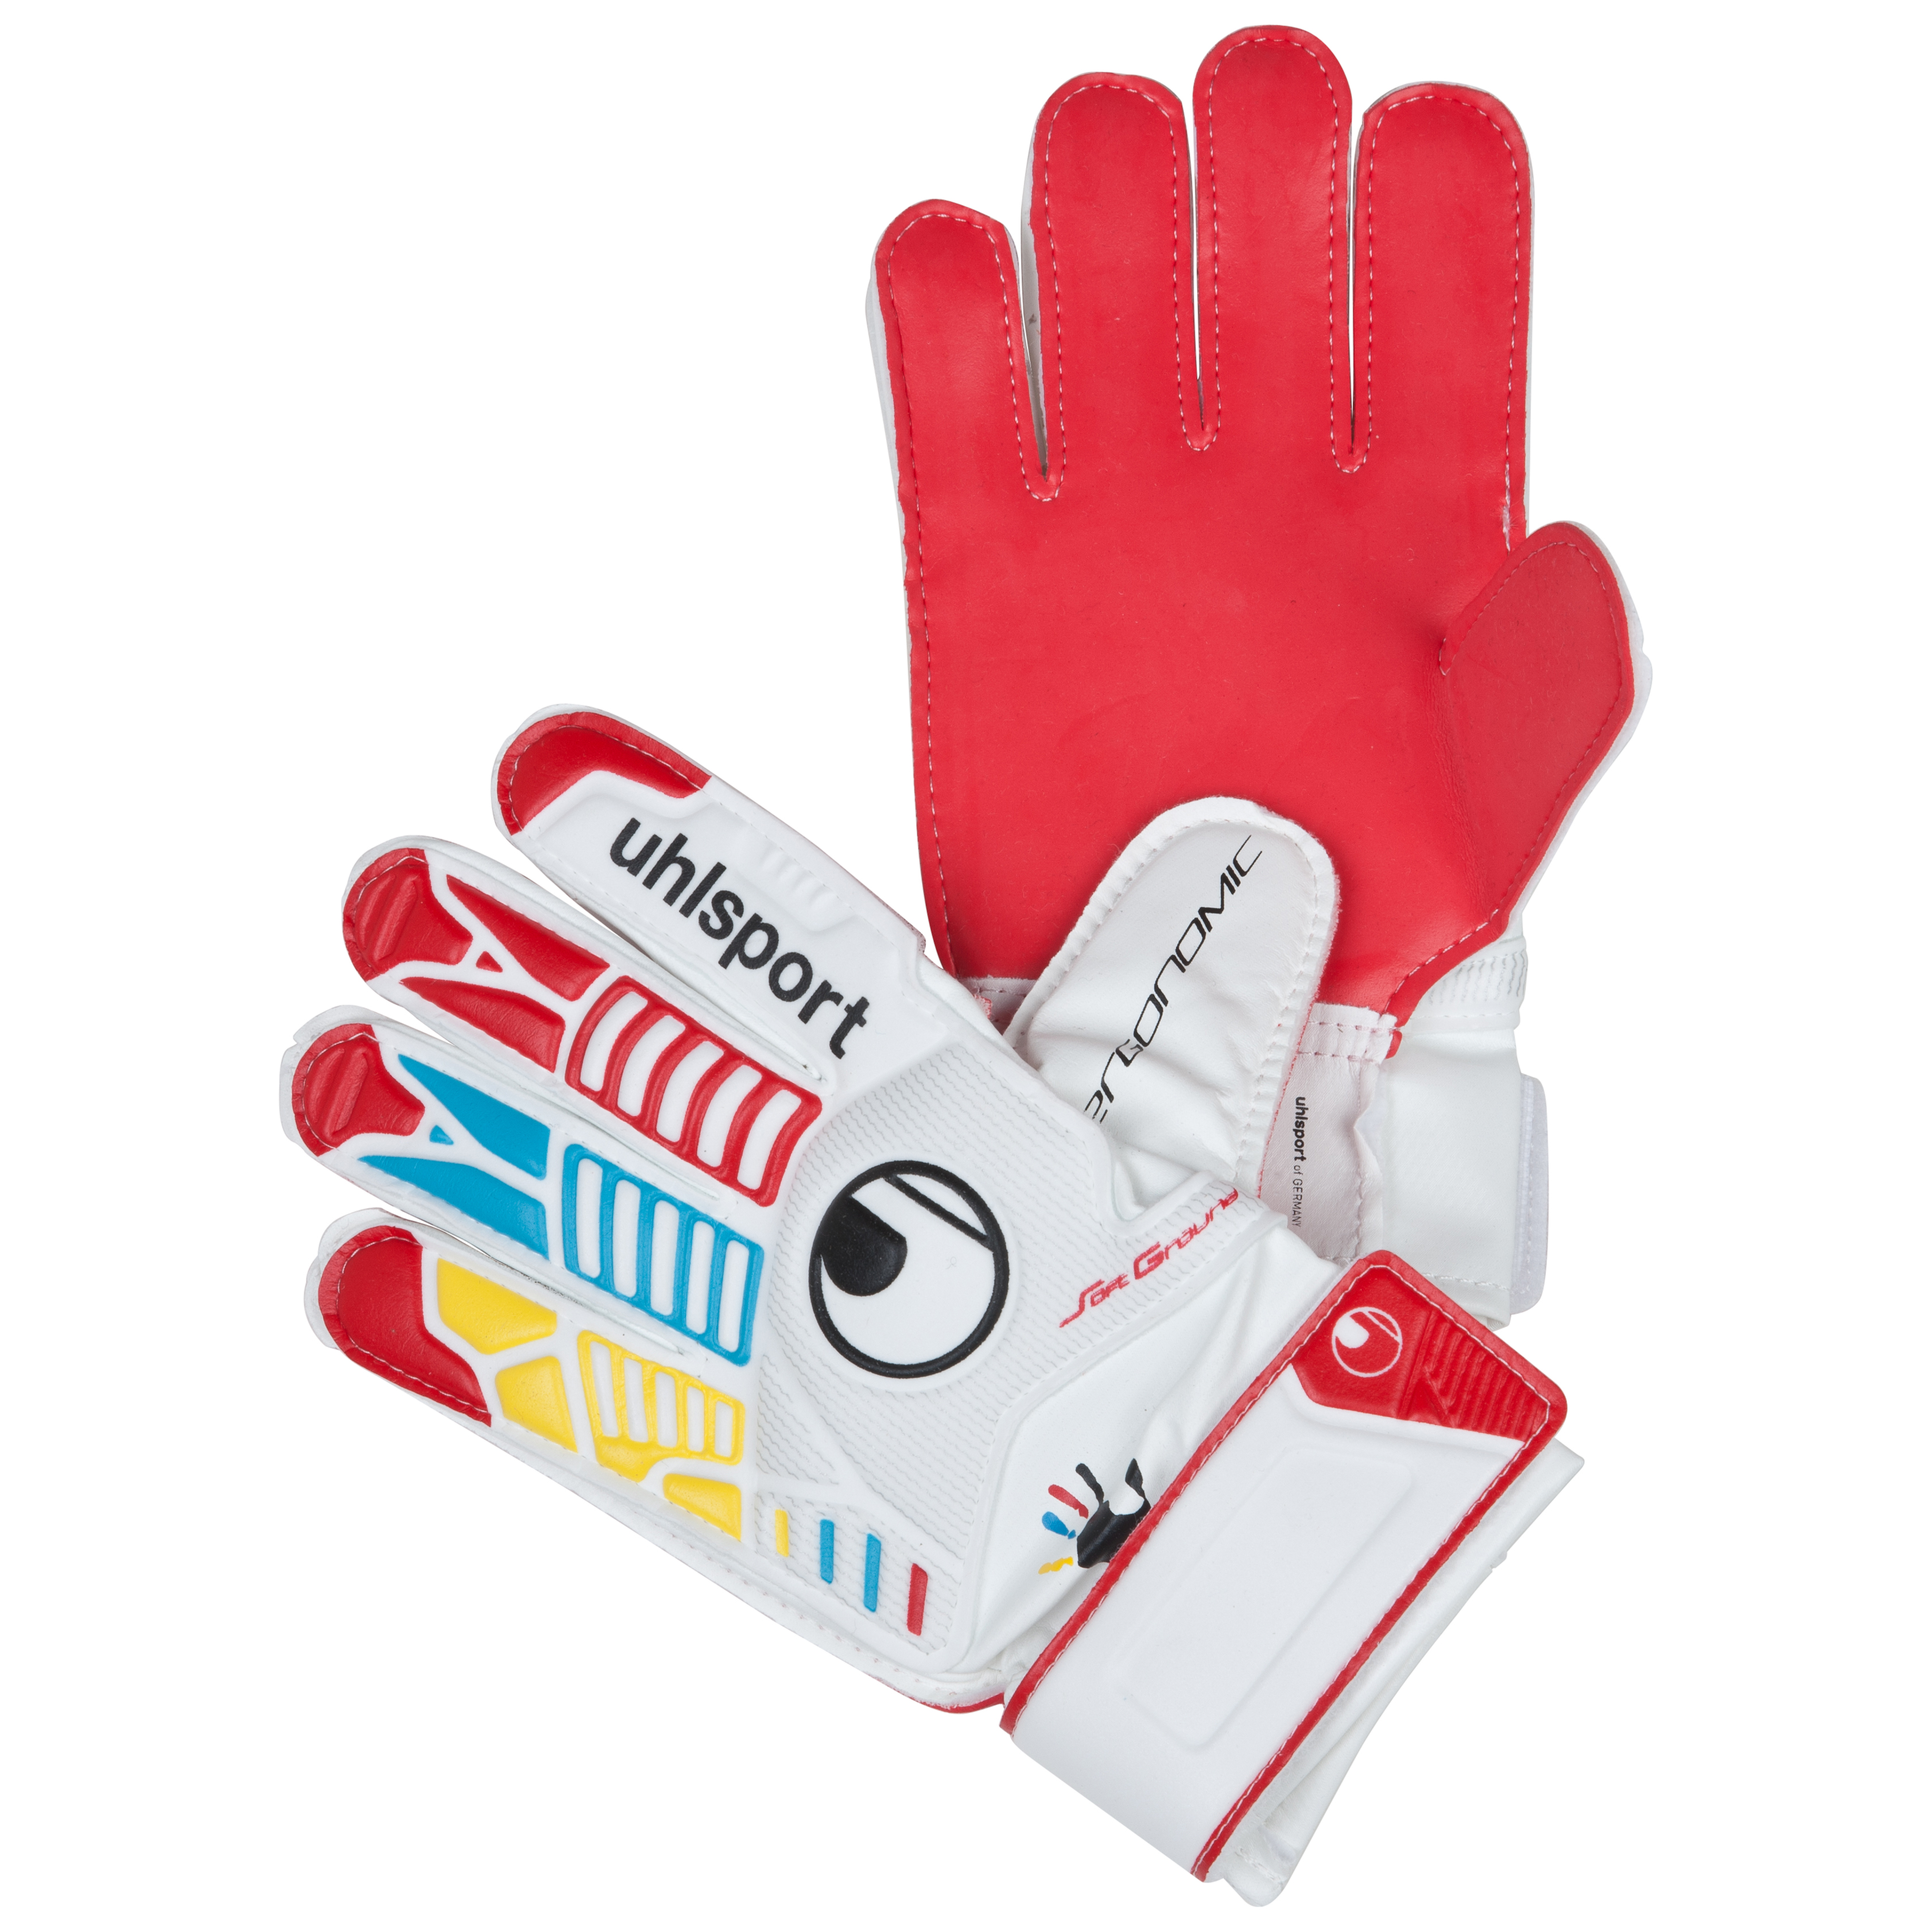 Uhlsport Ergonomic Starter Soft inchWir Tun Wasinch Goalkeeper Gloves - White/Red/Yellow/Cyan - Kids